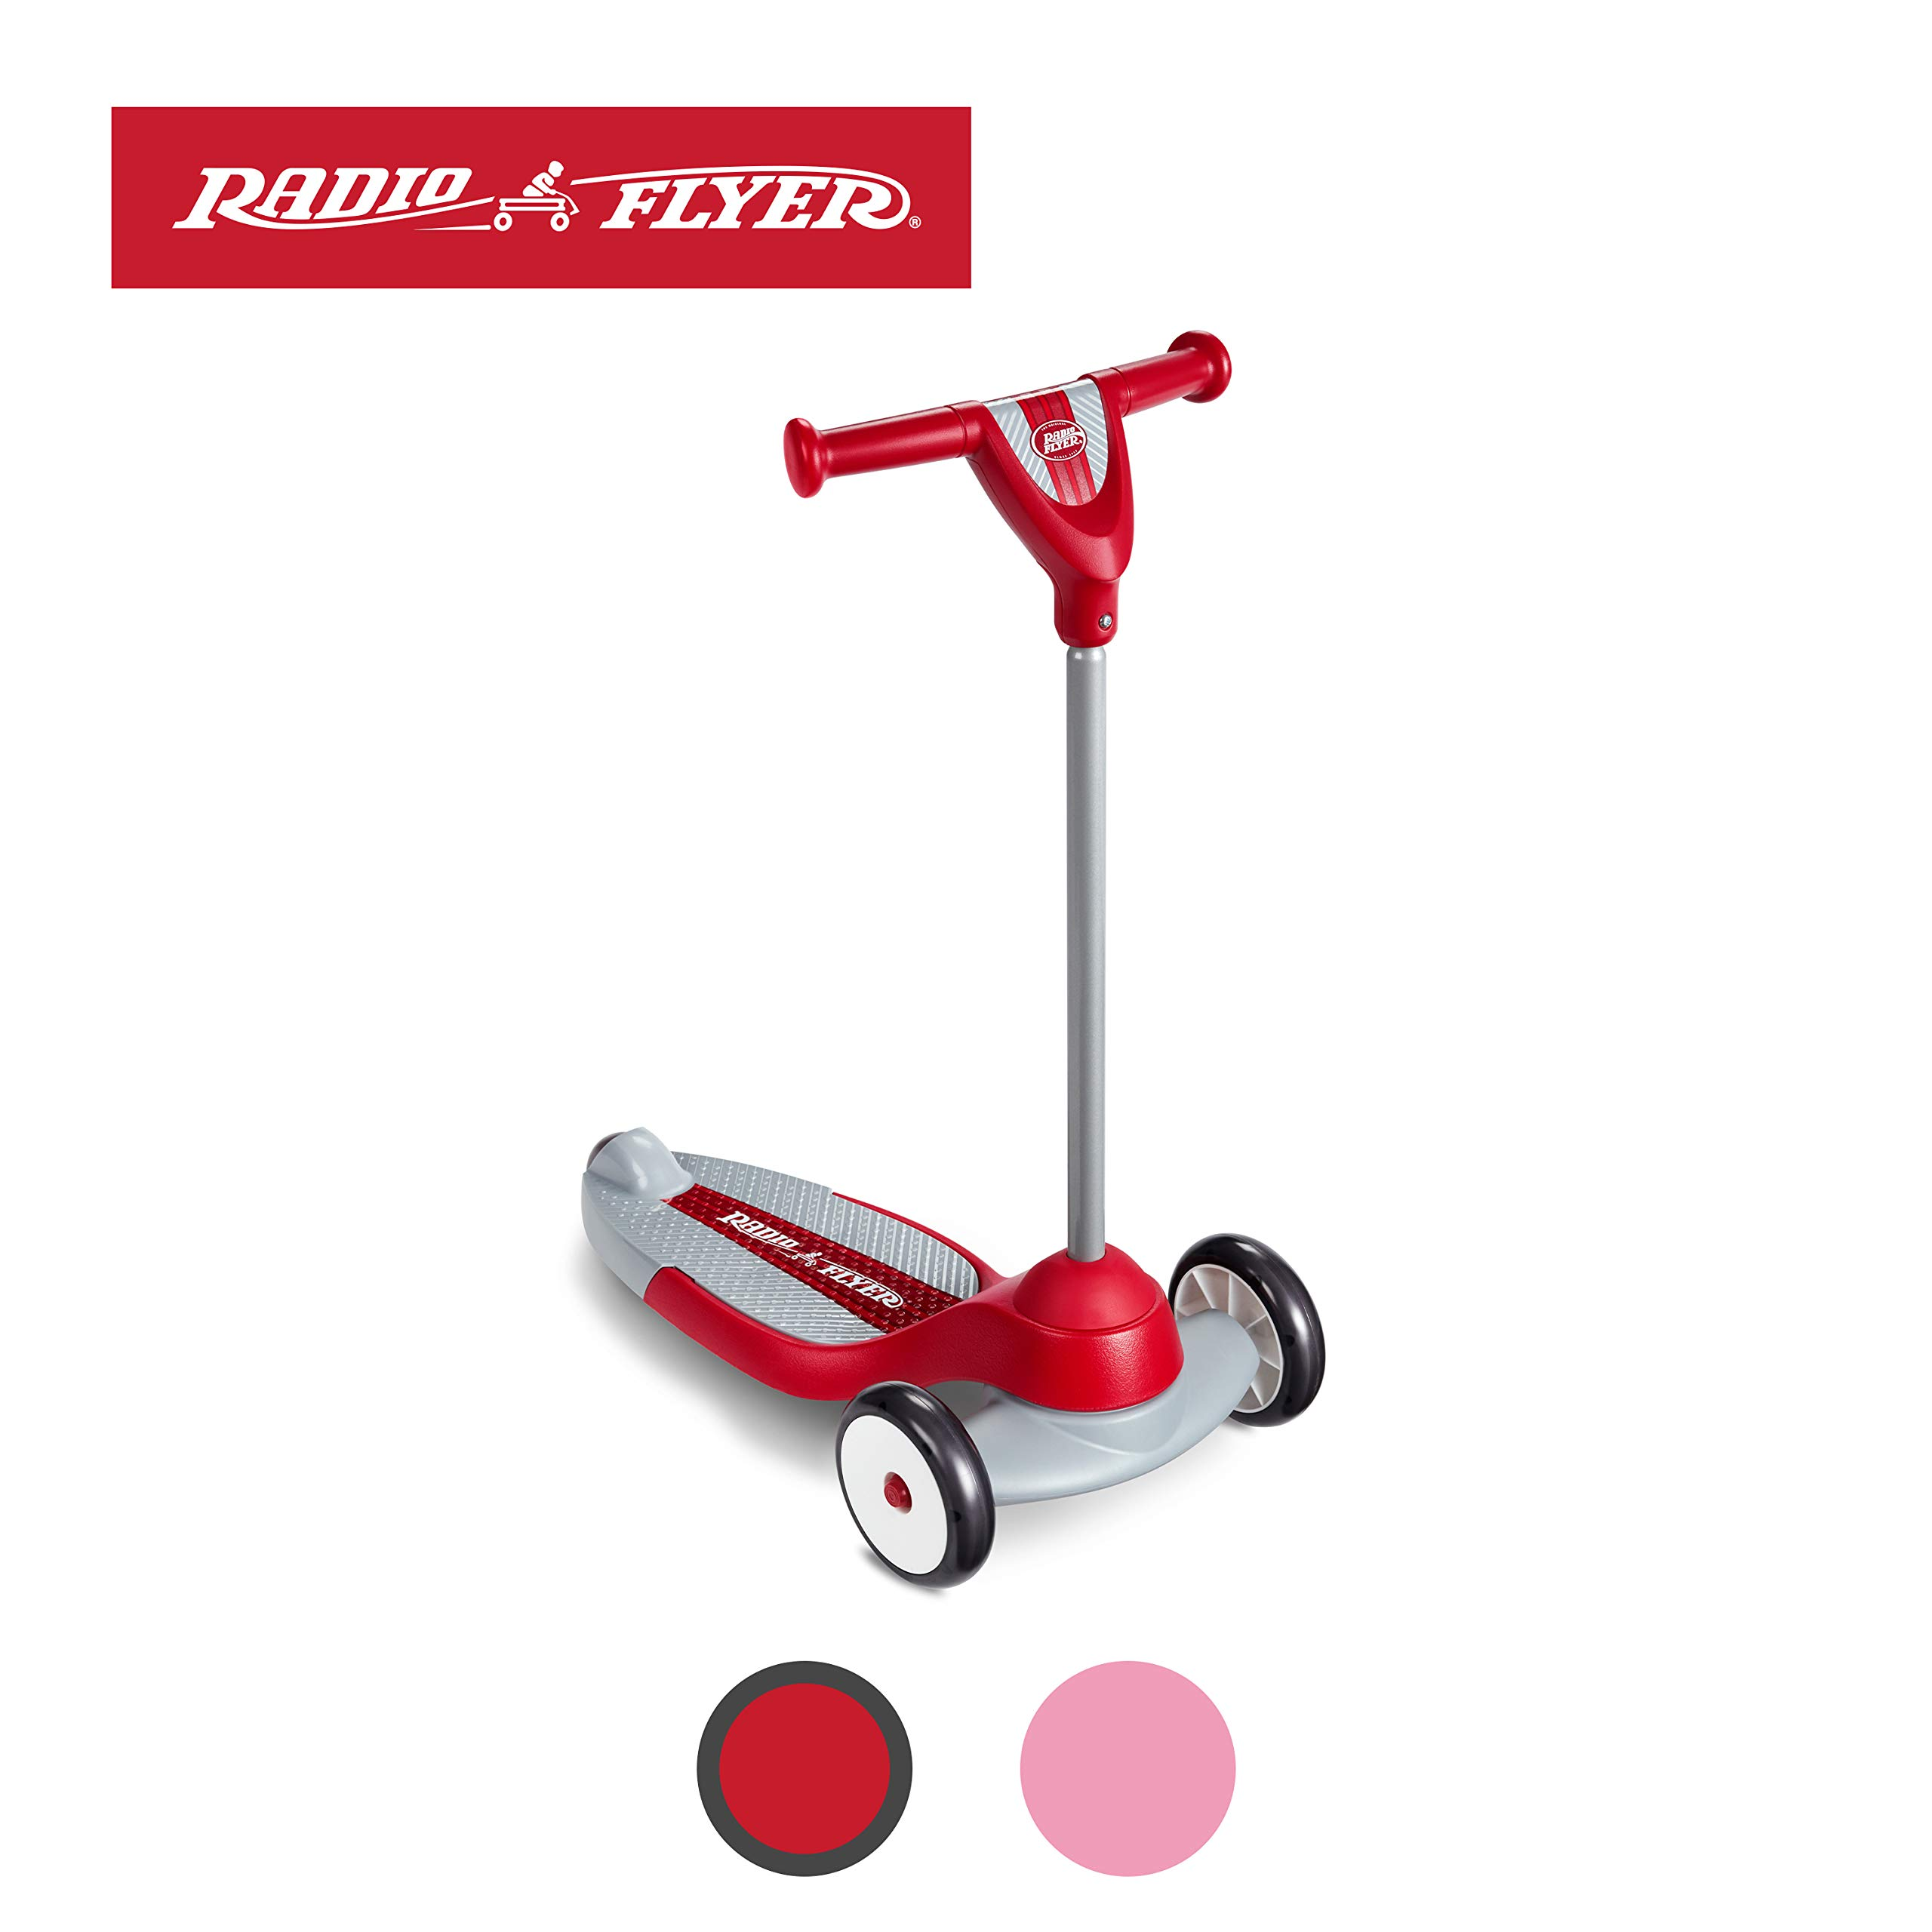 Radio Flyer My 1st Scooter (Amazon Exclusive) by Radio Flyer